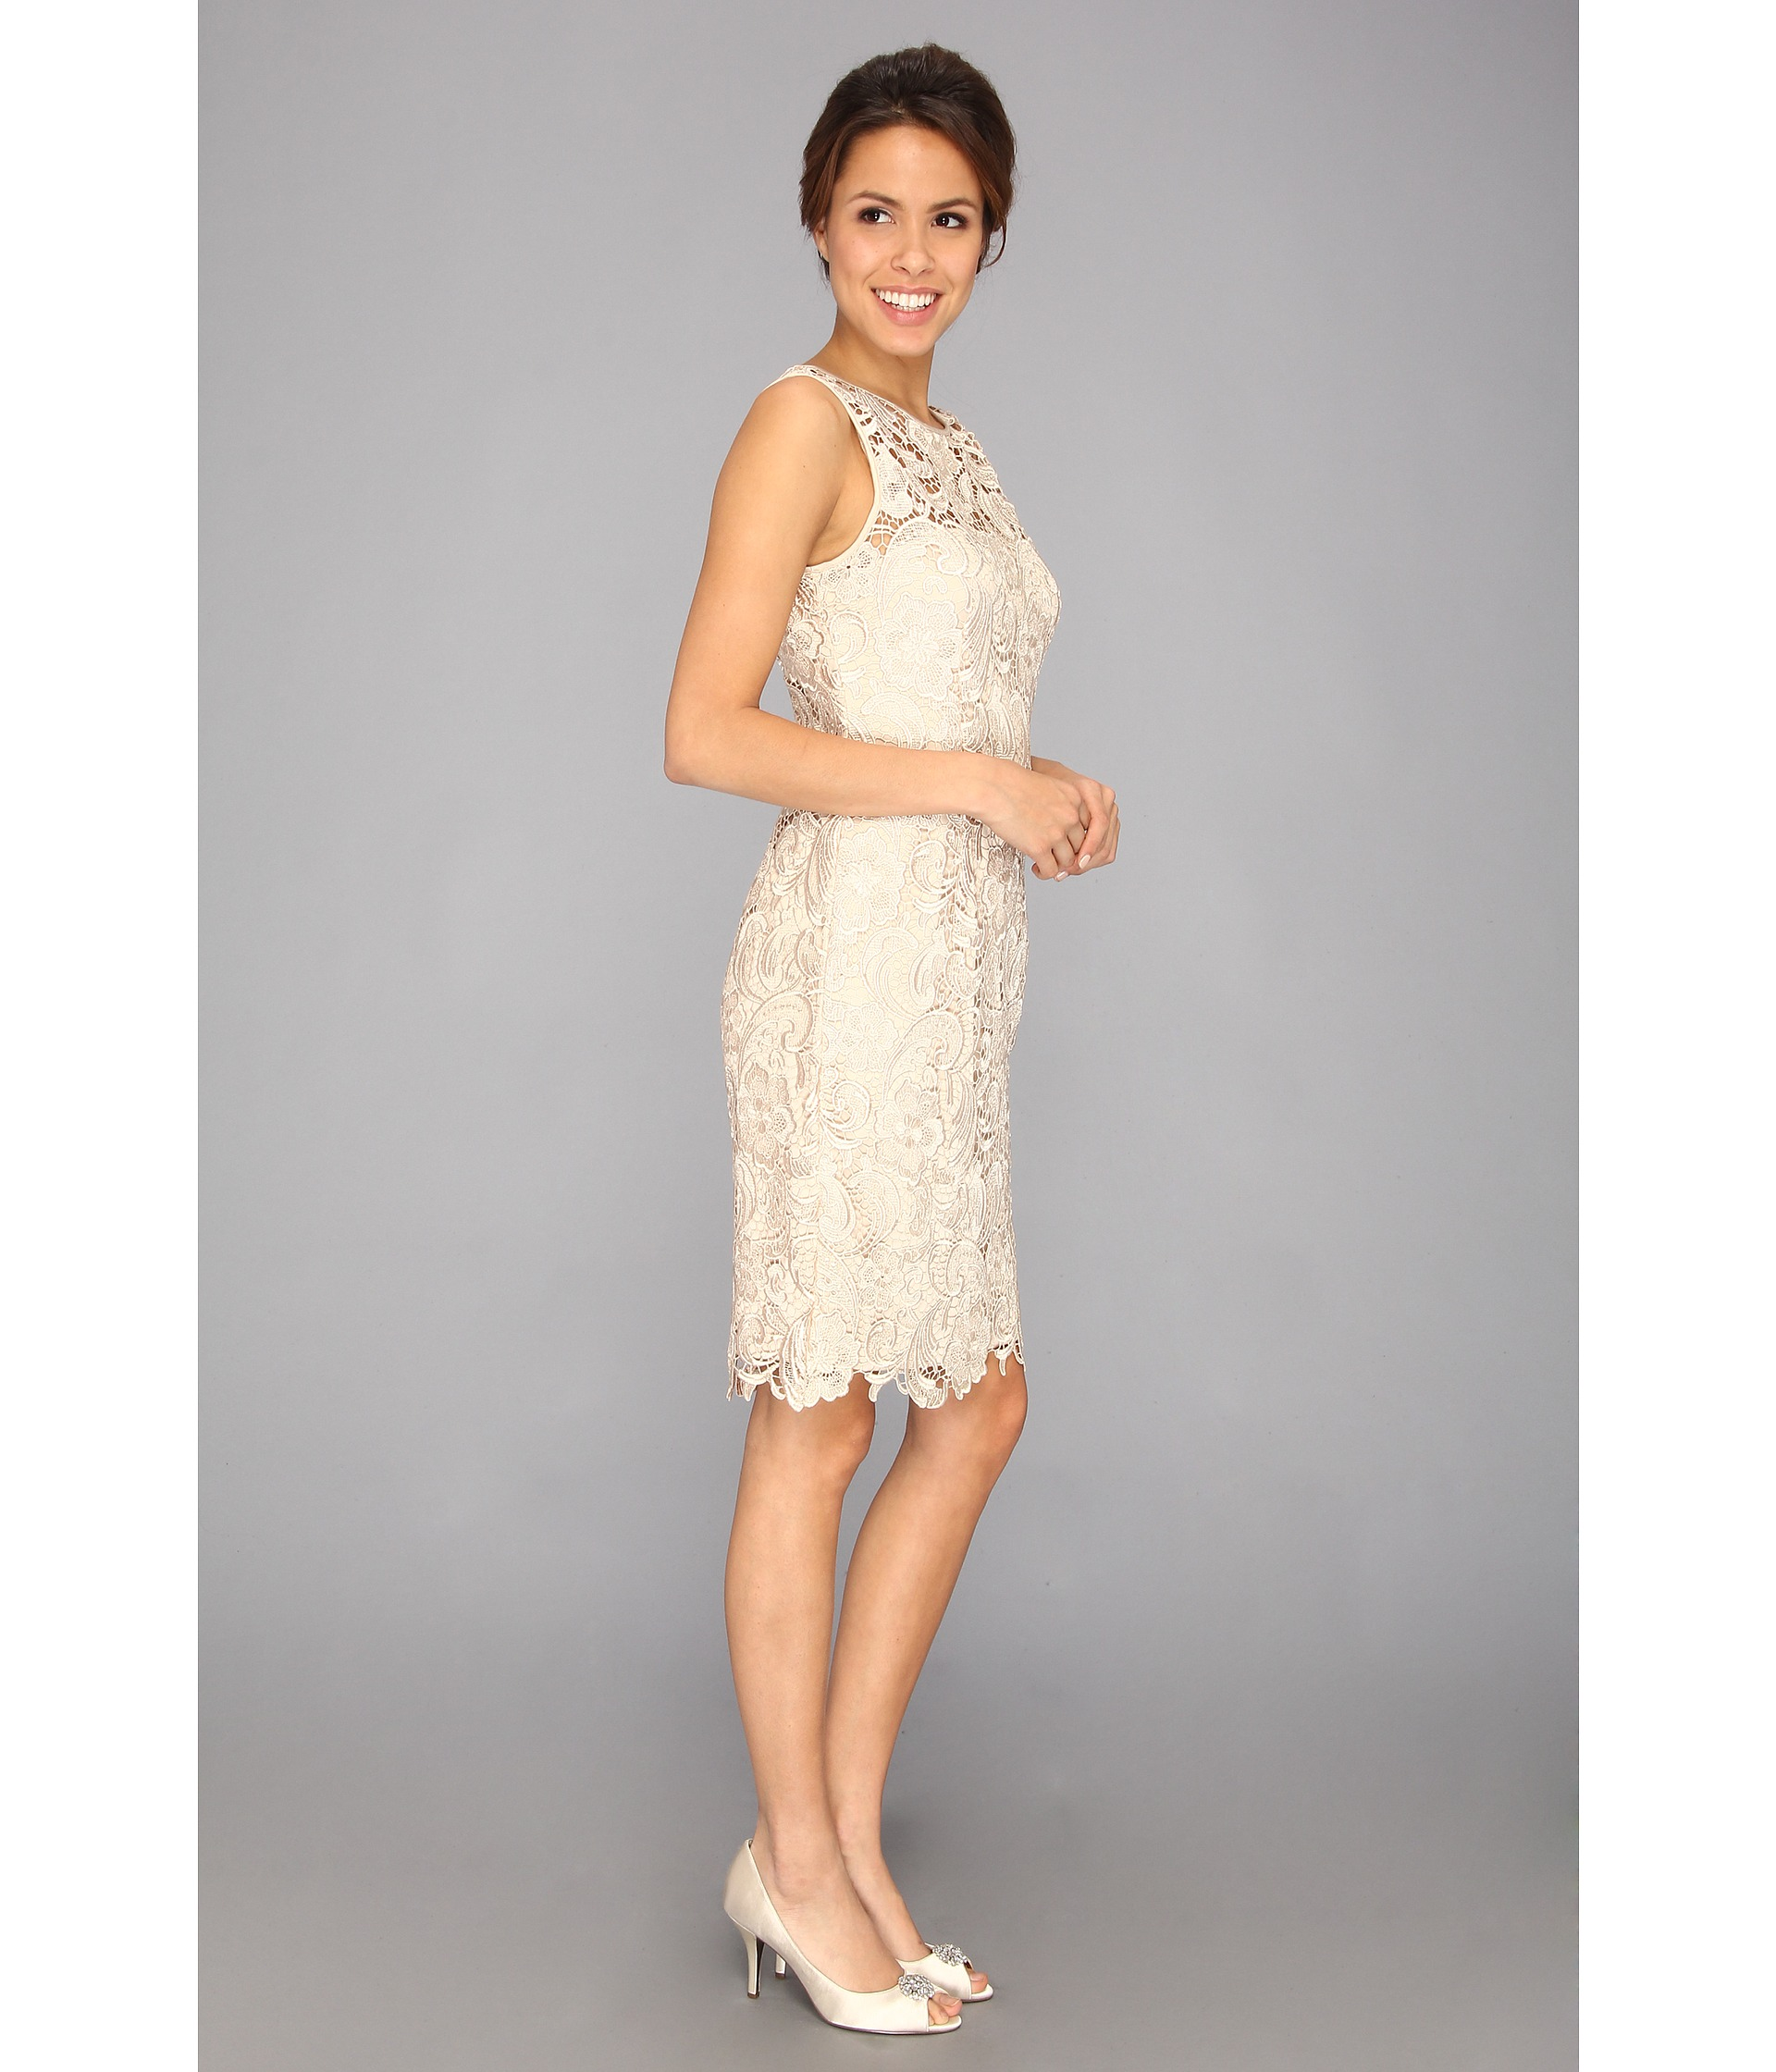 Adrianna Papell Illusion Neck Lace Dress - Zappos.com Free ...